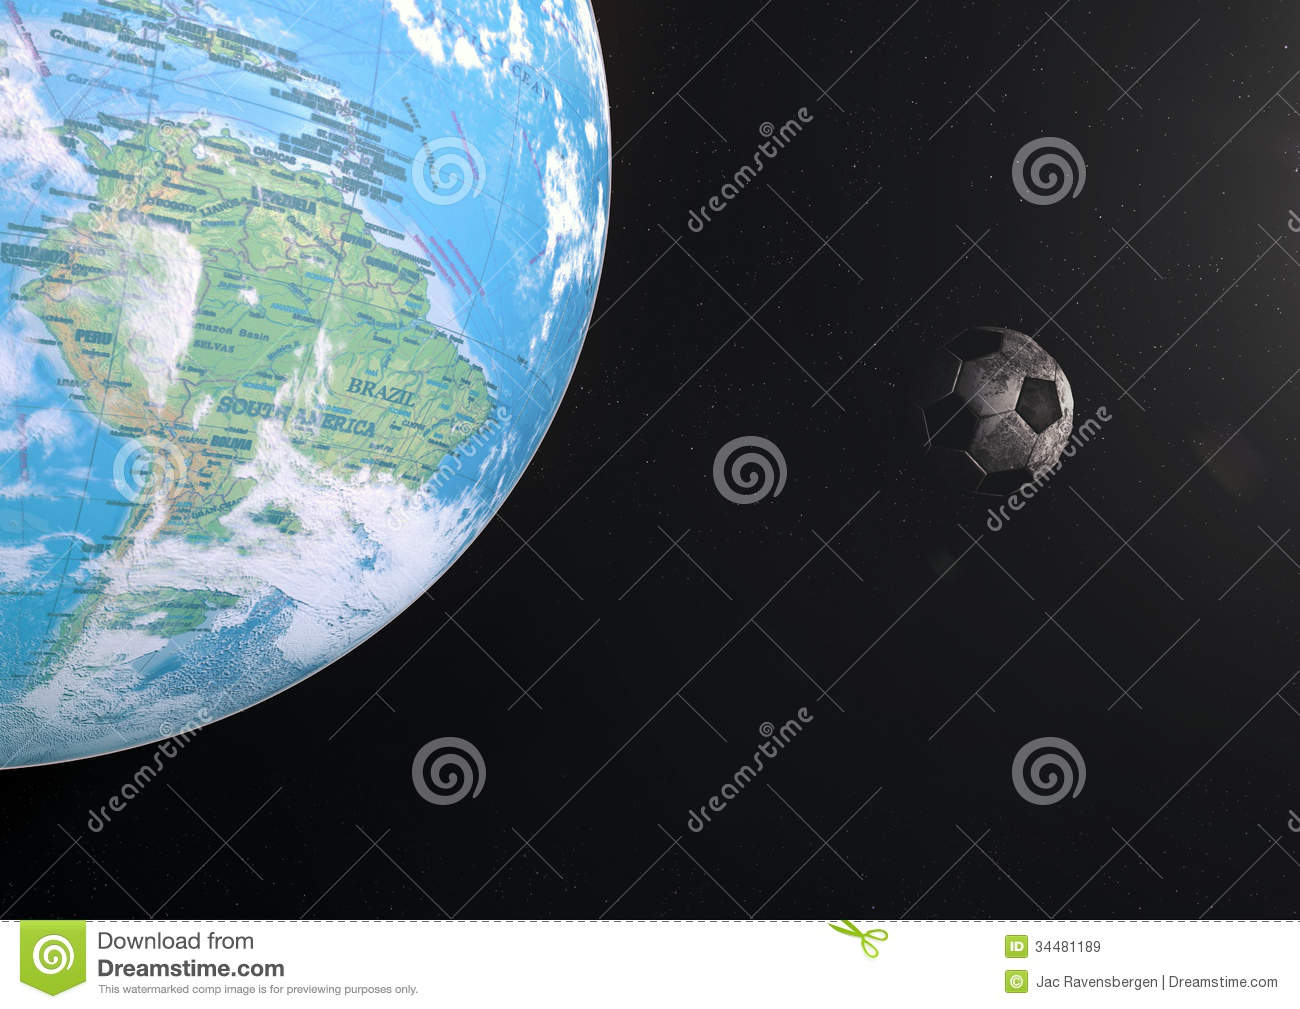 spacecraft circling earth - photo #3